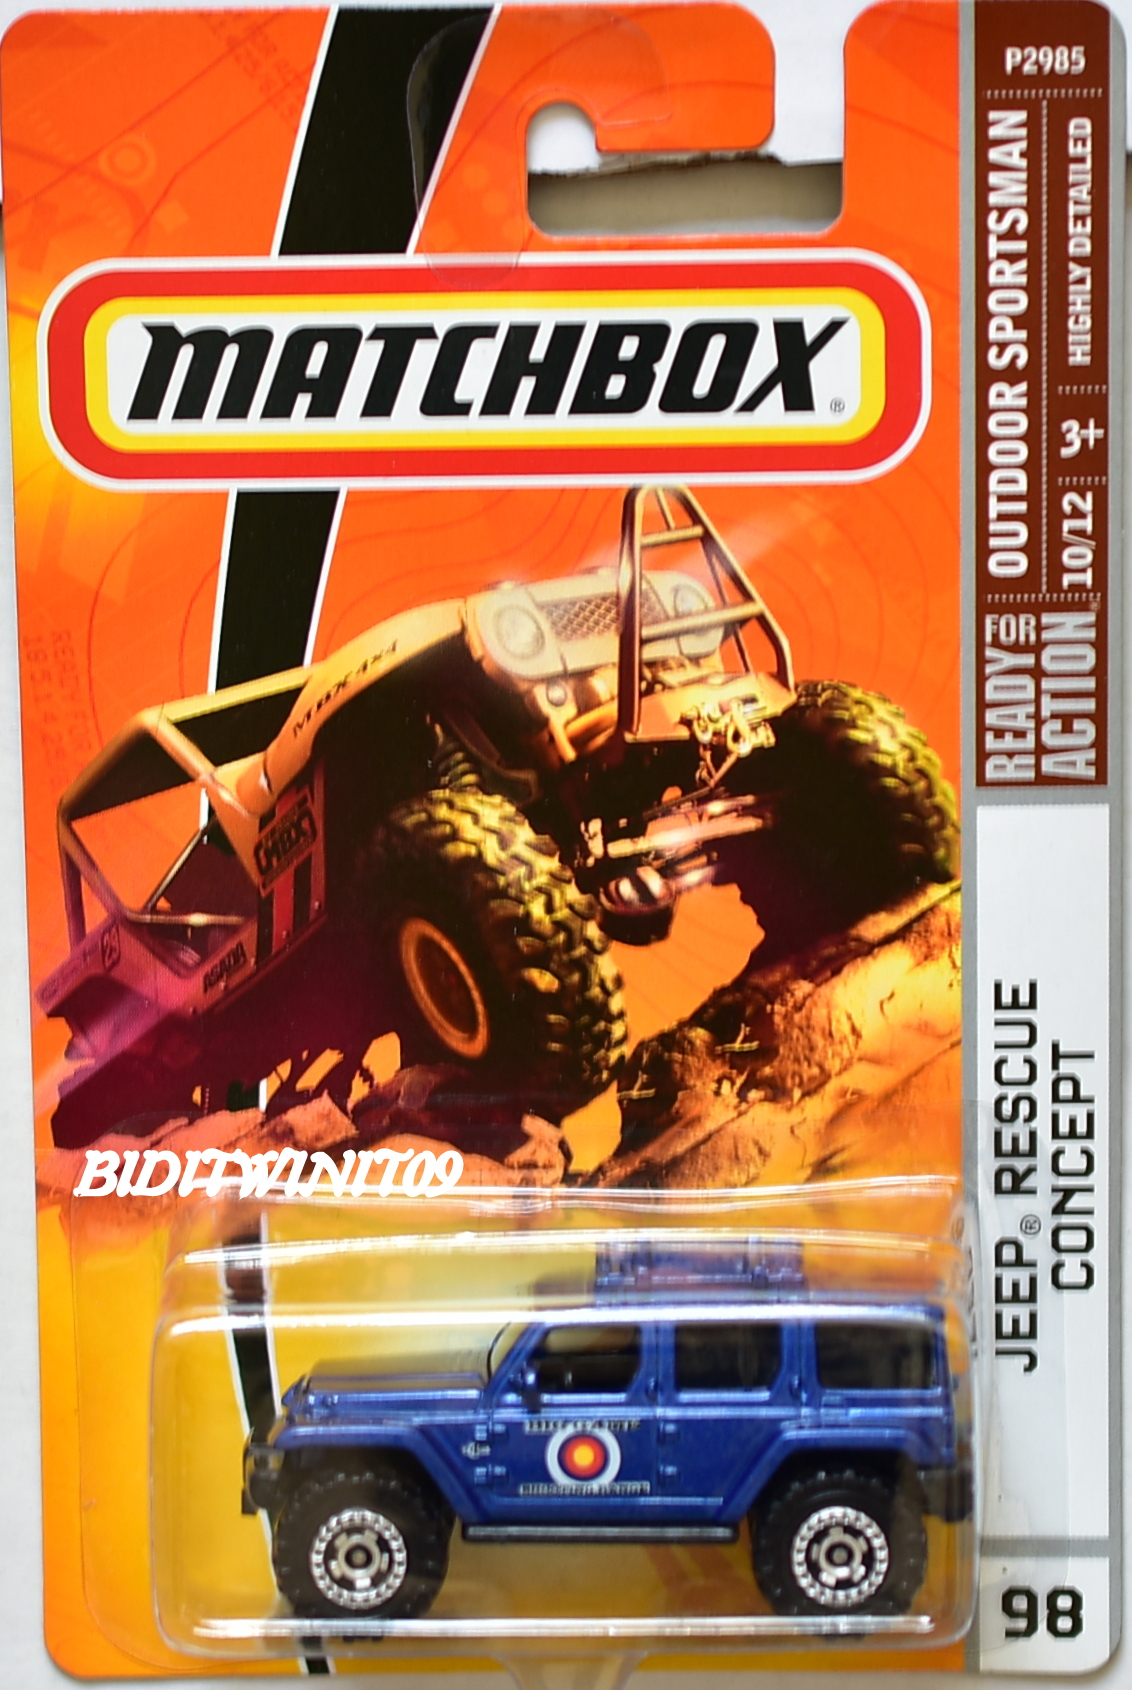 MATCHBOX 2008 OUTDOOR SPORTSMAN JEEP RESCUE CONCEPT #98 BLUE E+